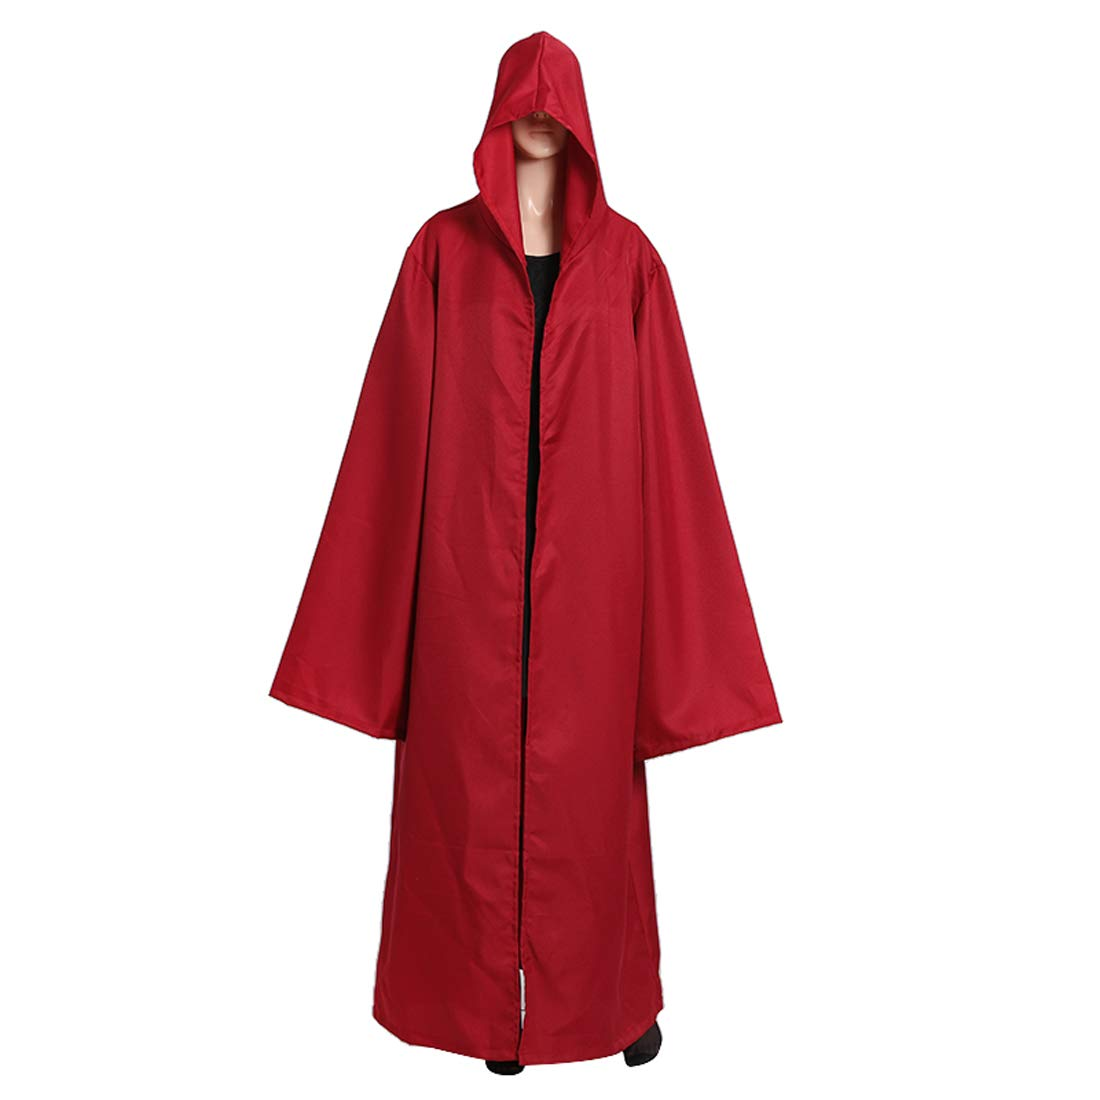 Wgior Men Tunic Hooded Robe Cloak Knight Fancy Cool Halloween Cosplay Costume (L, Red) by Wgior (Image #1)